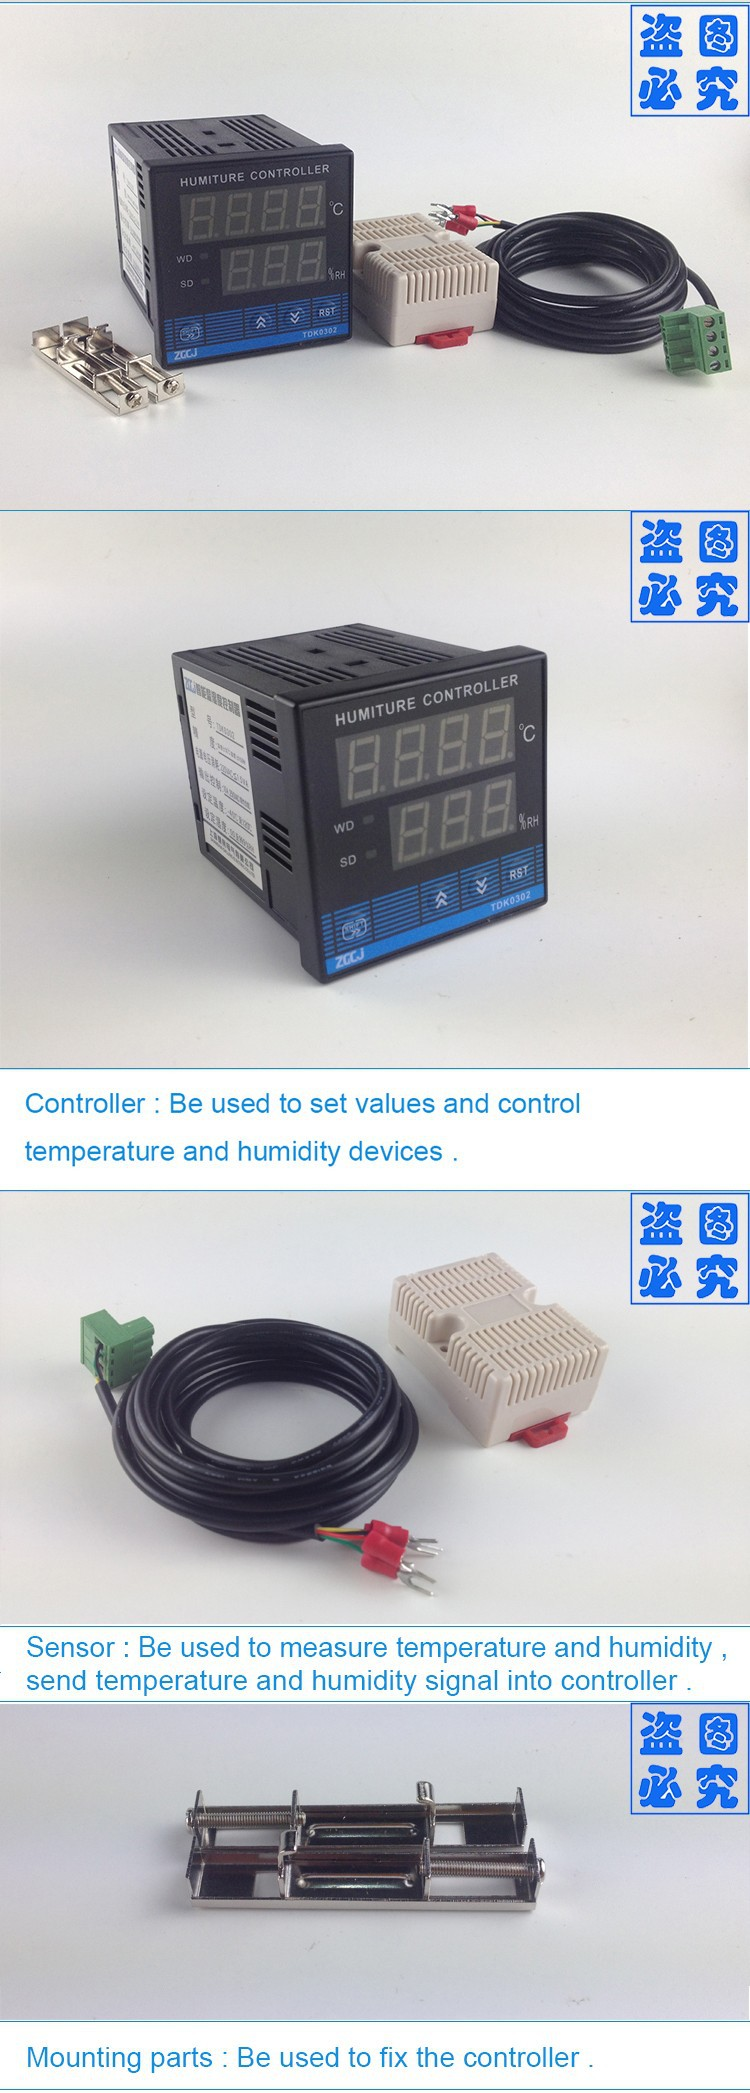 Digital Tdk0302 Temperature And Humidity Controller Work With Heater Wiring Diagram